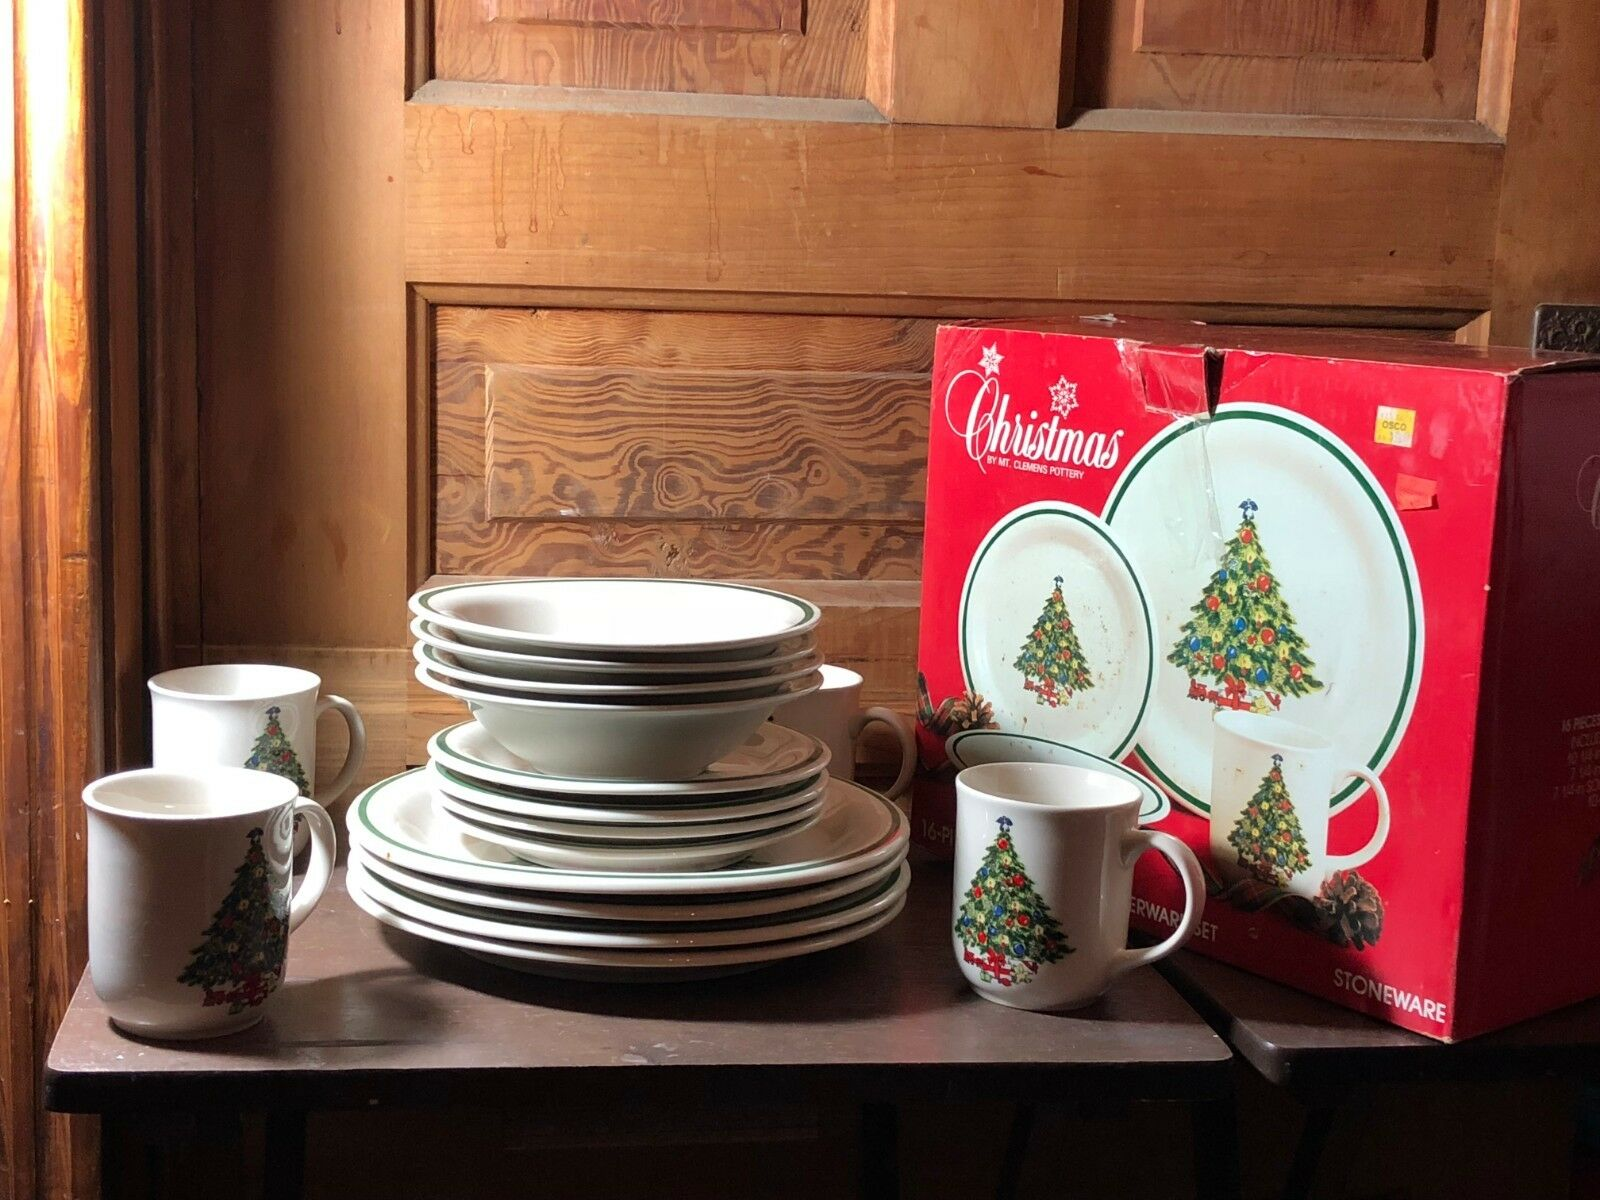 Mt. Clemens Pottery 16 Piece Christmas Tree Dinnerware Set With Original Box C